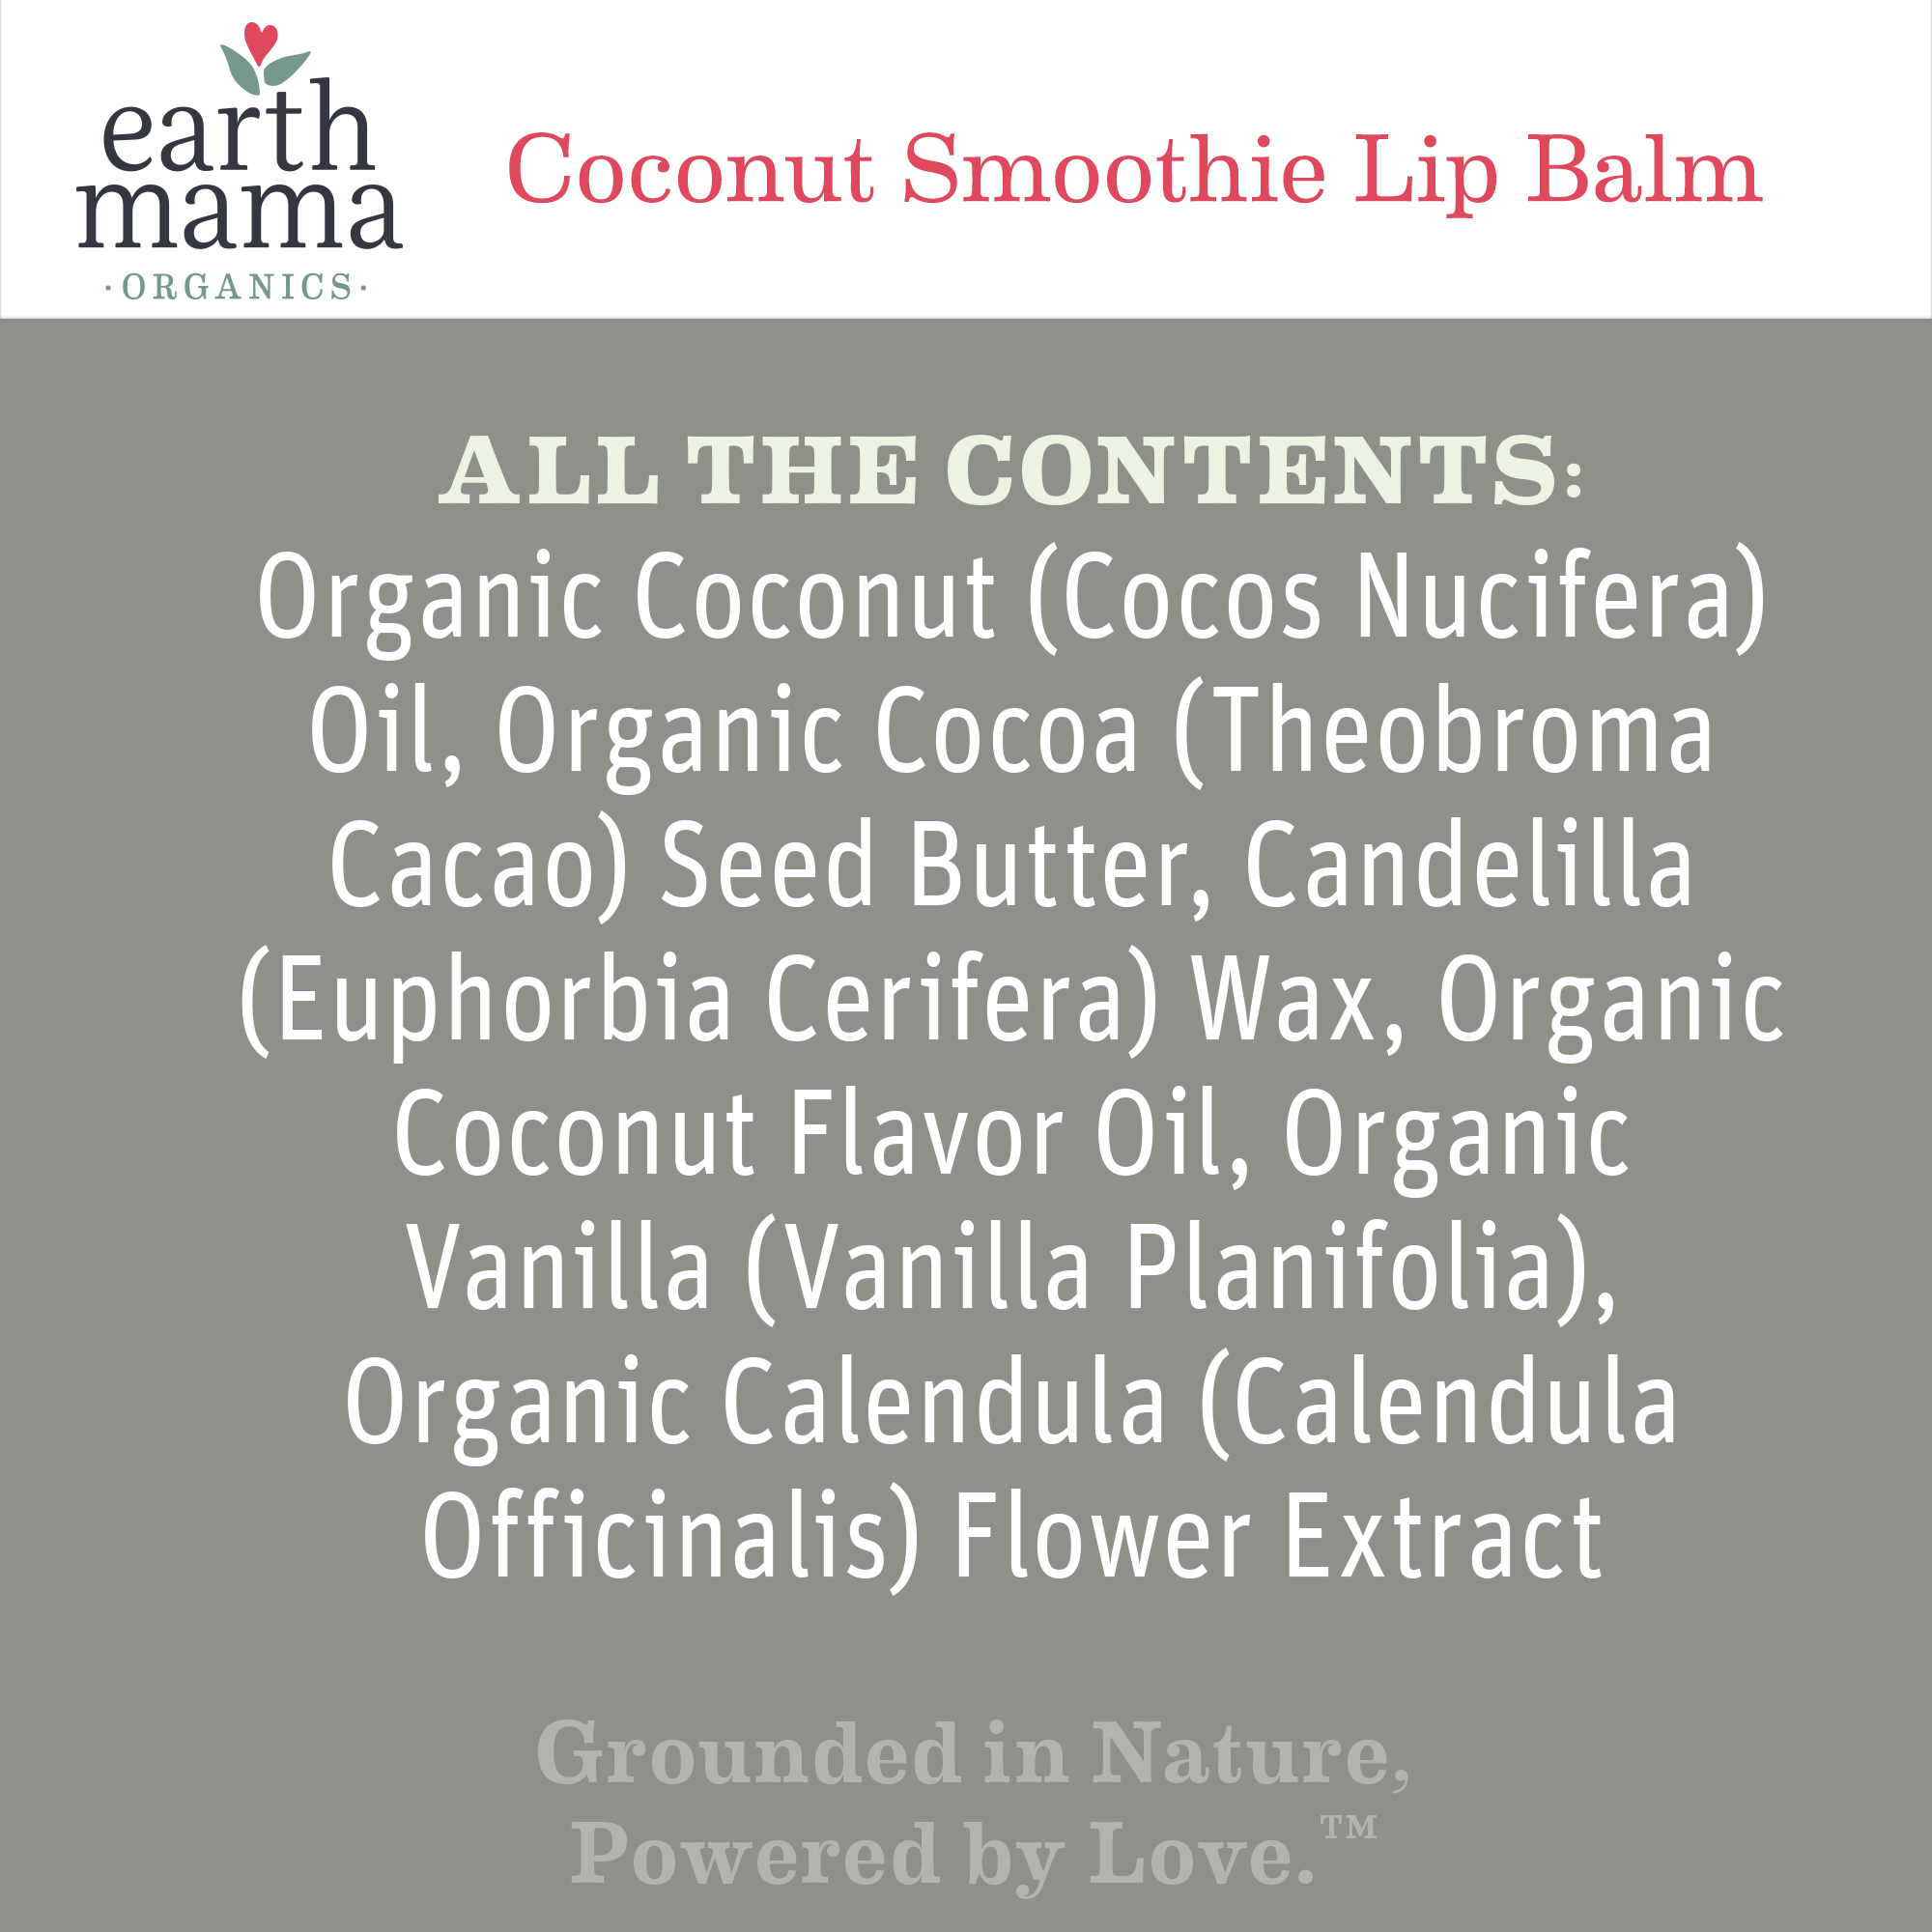 earth-mama-angel-baby-lip-balm-coconut-ingredients.jpg